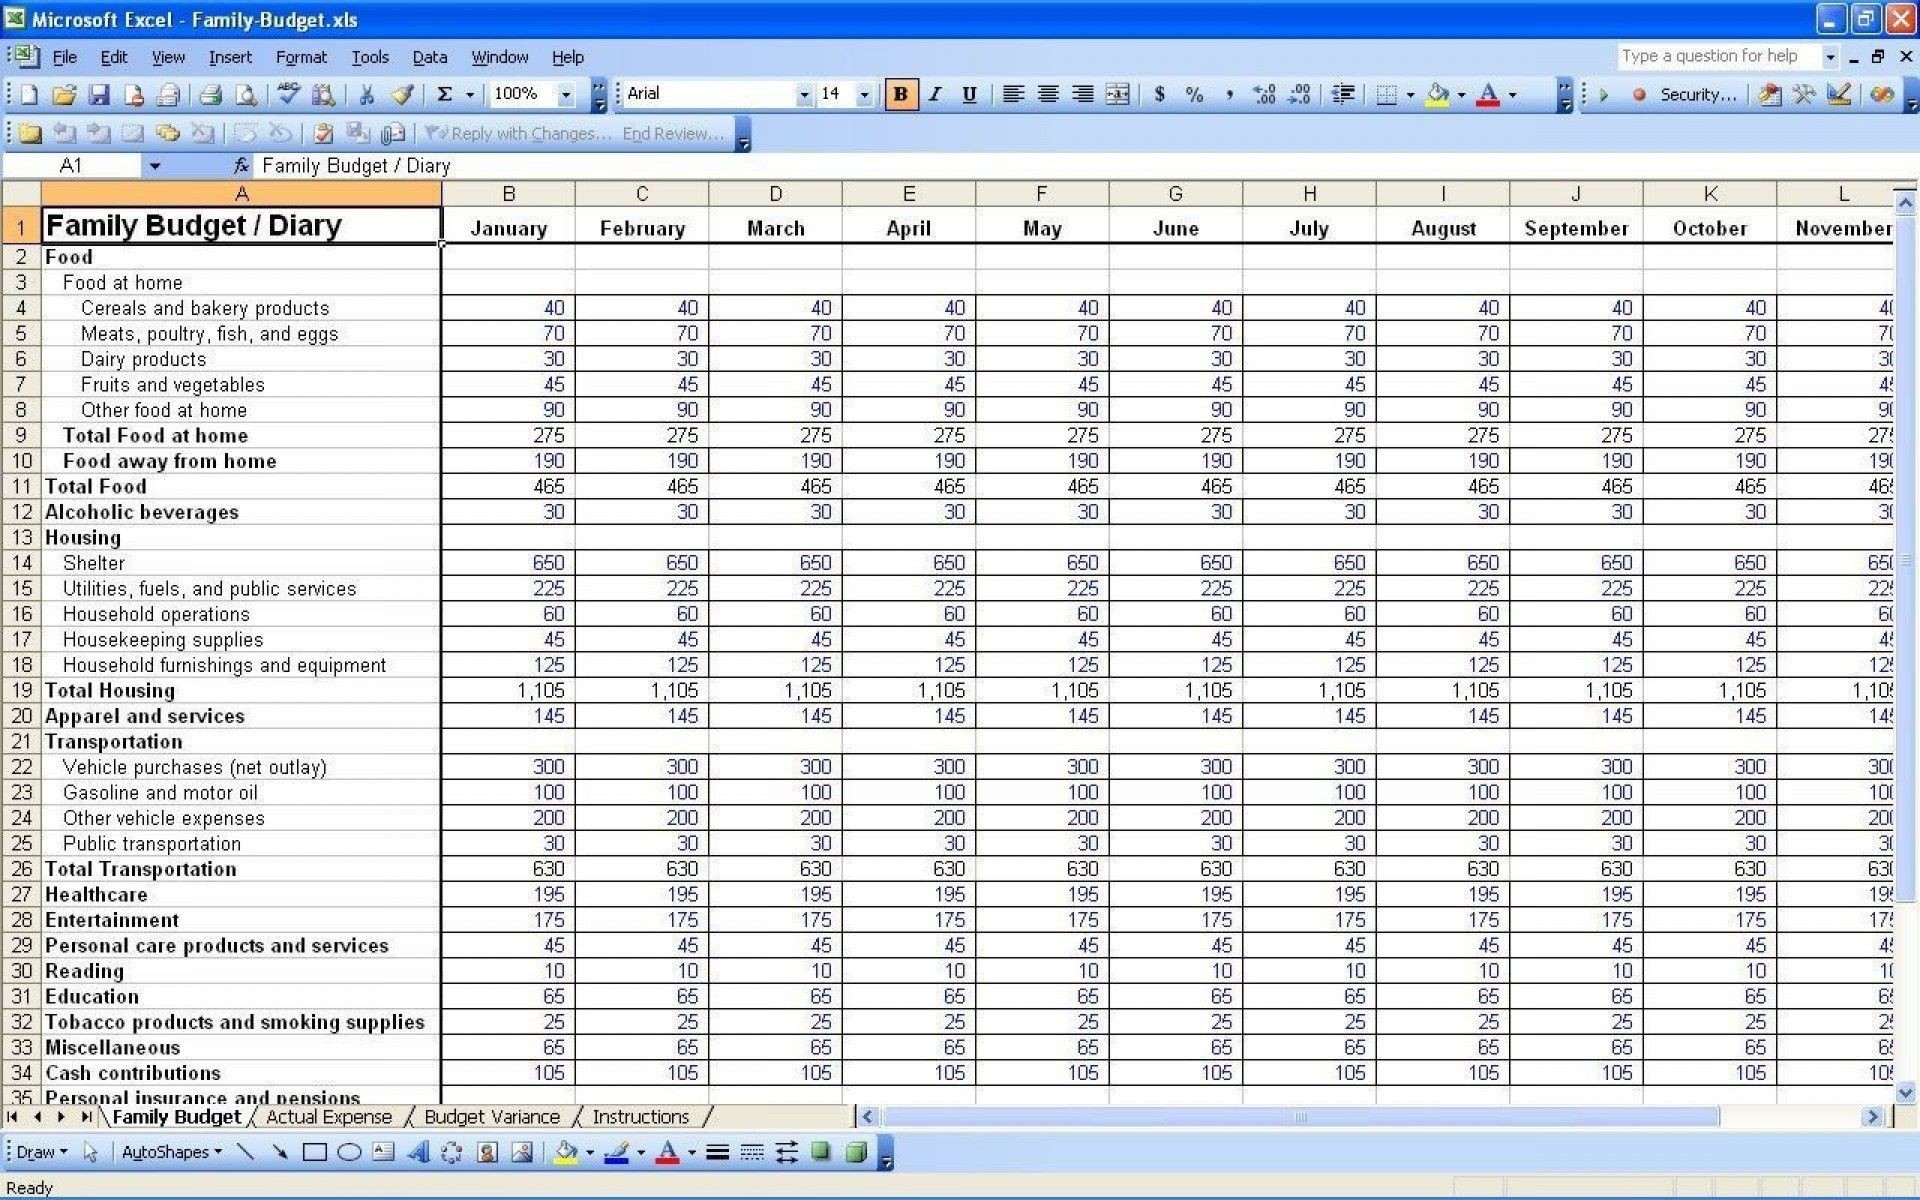 005 Outstanding Personal Finance Template Excel Inspiration  Spending Expense Free Financial Planning India1920